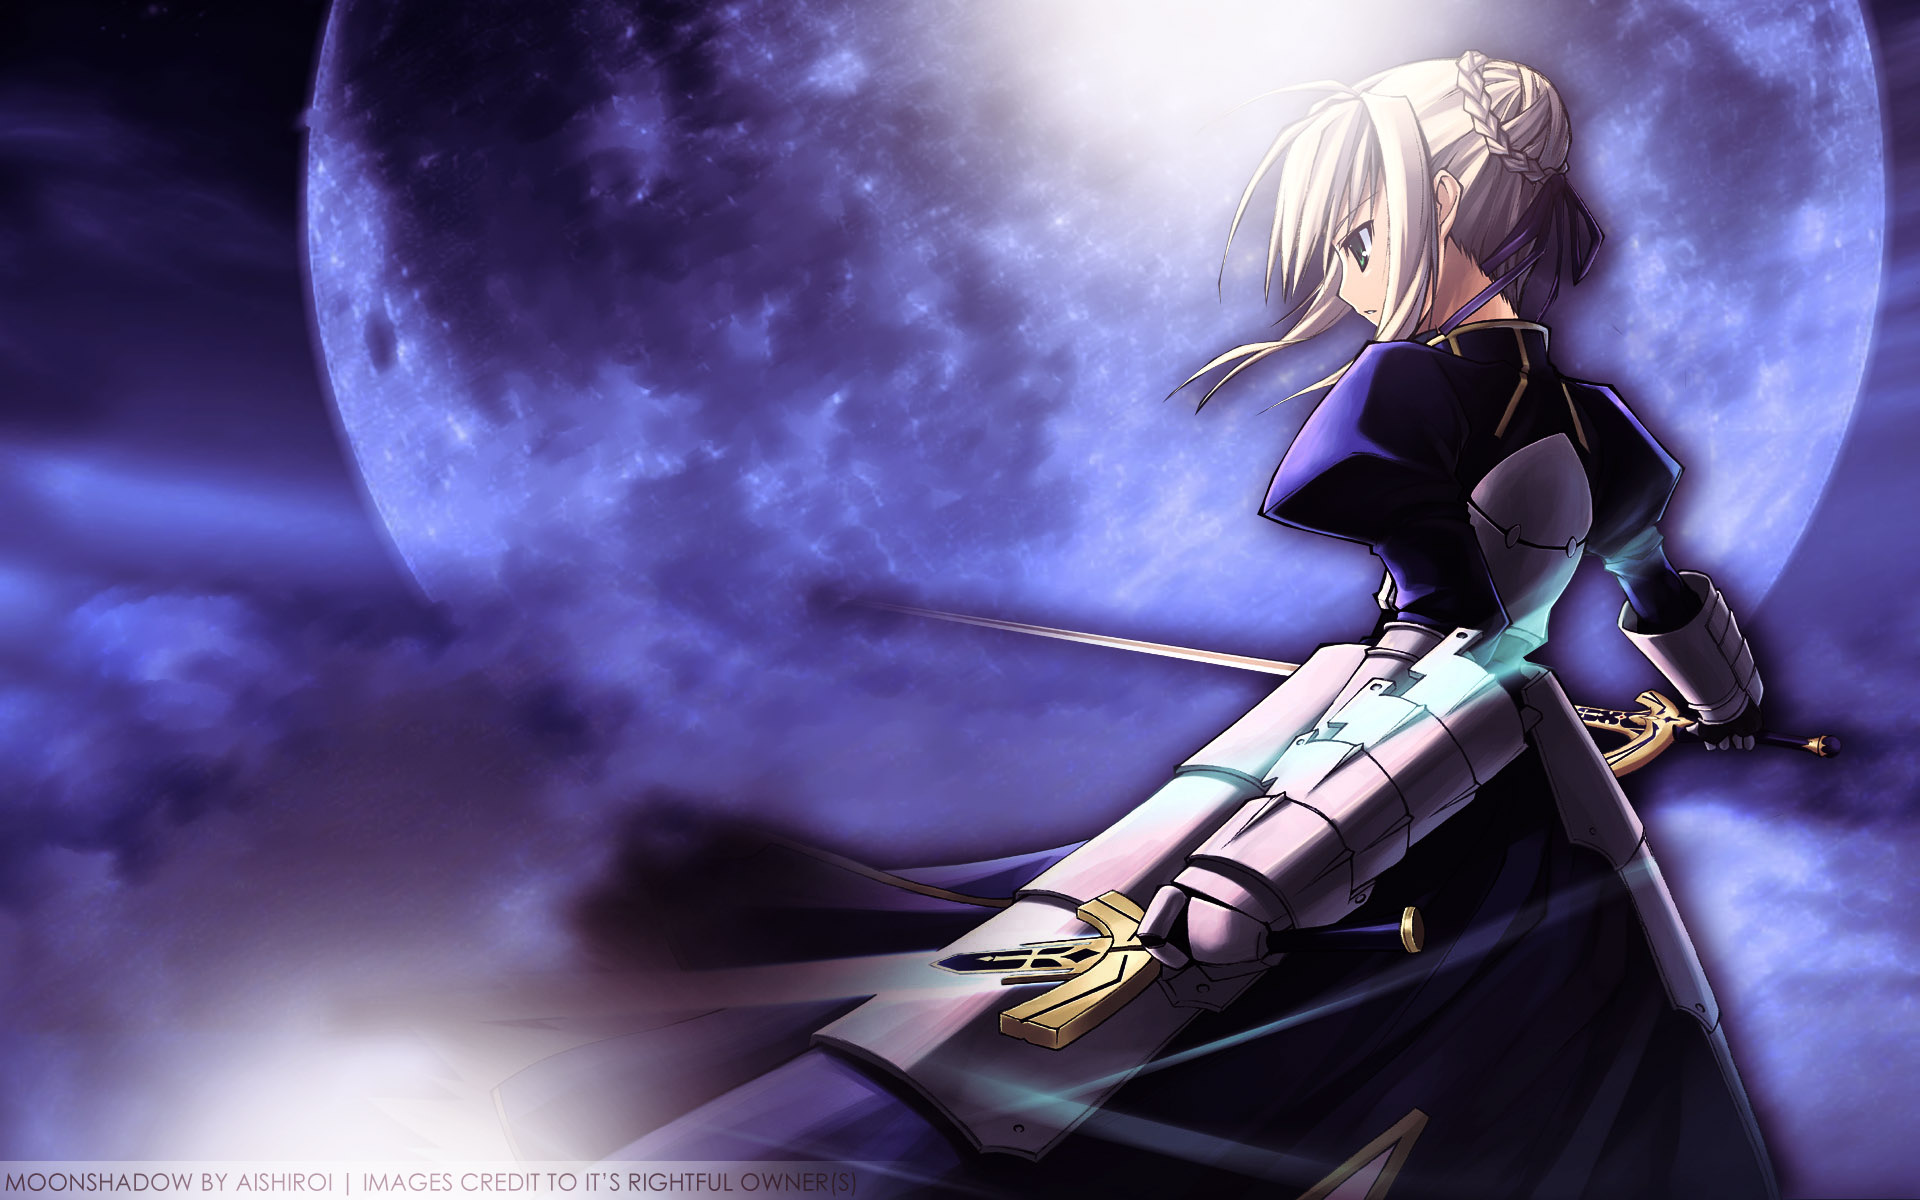 Fate Stay Night images Saber wallpaper photos 24684720 1920x1200